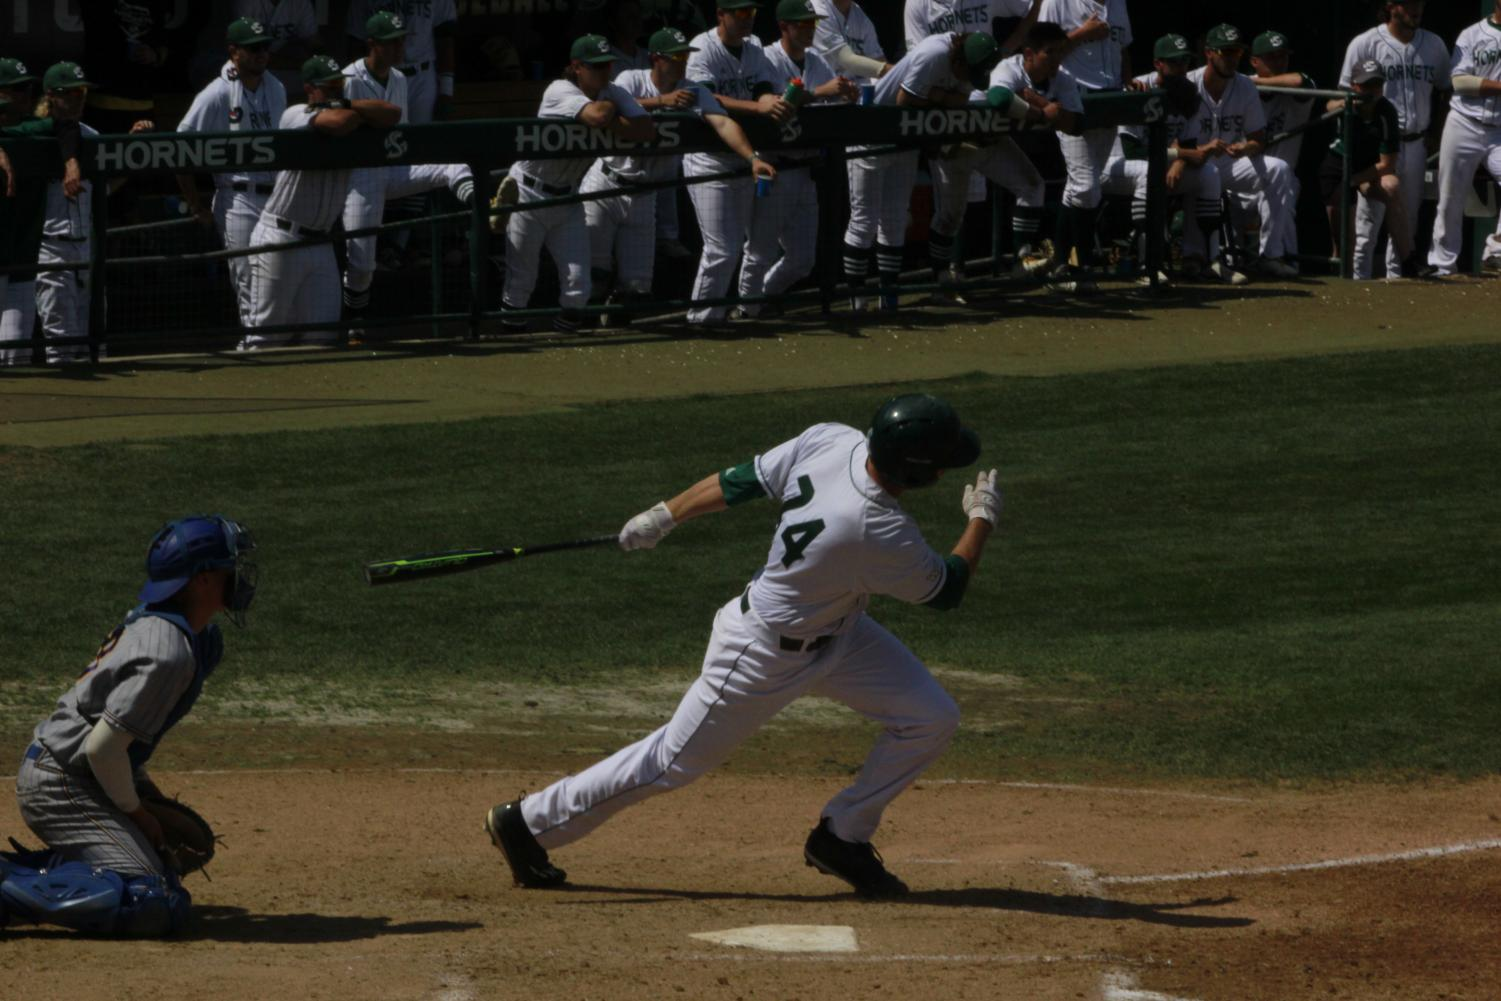 Junior+outfielder+Matt+Smith+sprints+to+first+base+after+hitting+a+single+to+left+field+in+a+5-4+win+Sunday+over+CSU+Bakersfield+at+John+Smith+Field.+Smith+had+two+hits%2C+two+walks%2C+one+run+scored+and+three+RBIs+in+the+win.